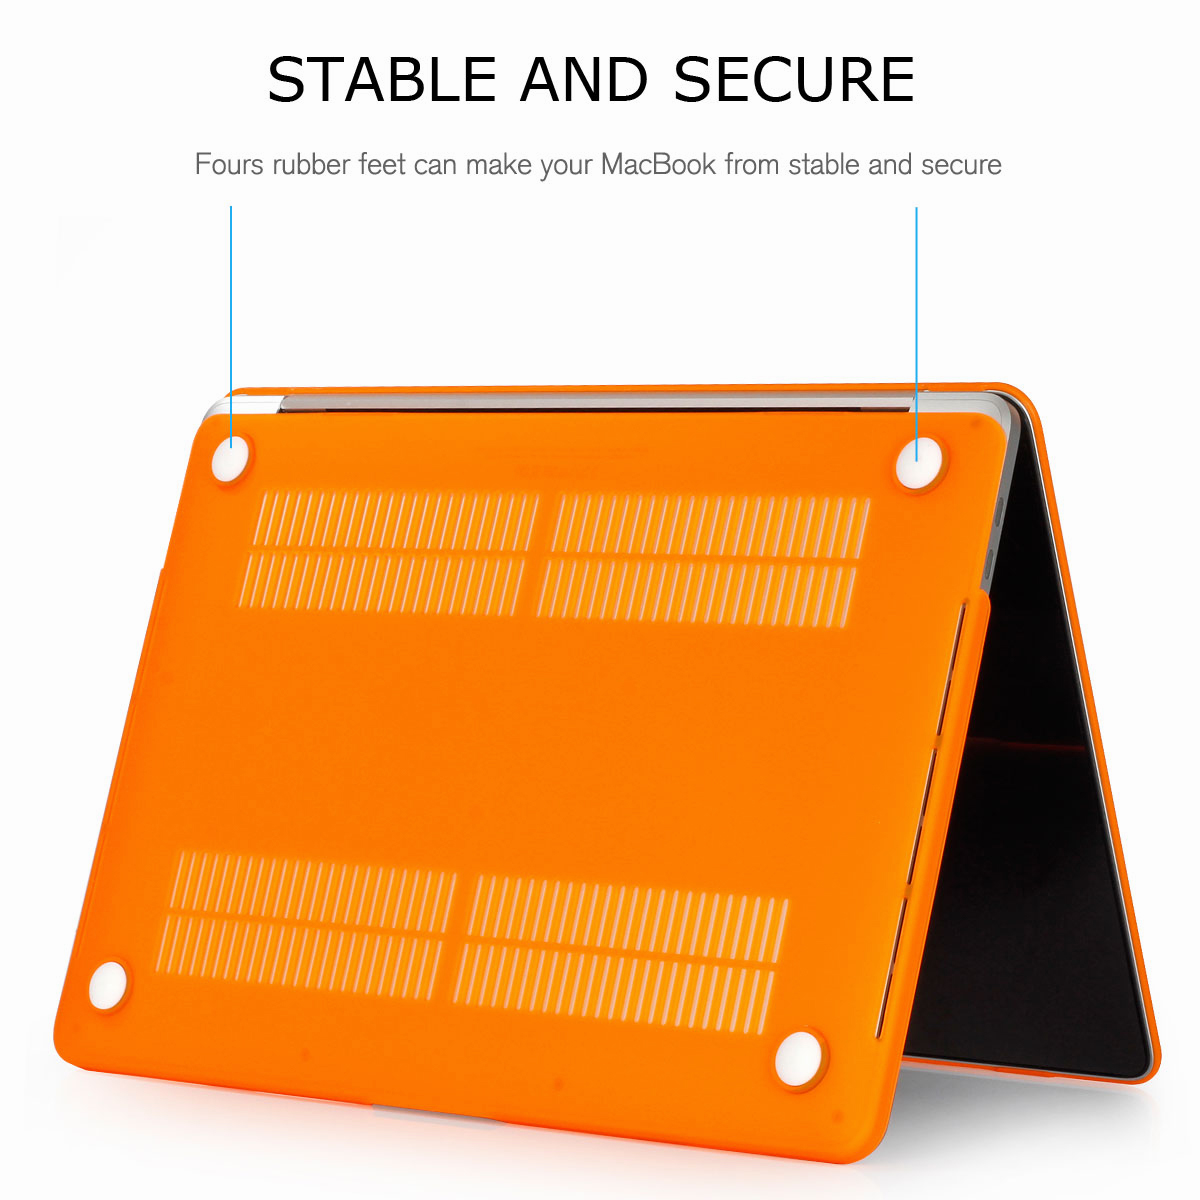 Shockproof-Rubberized-Matte-Hard-Case-Cover-For-Macbook-13-034-15-034-Inch-A1286-A1278 thumbnail 29